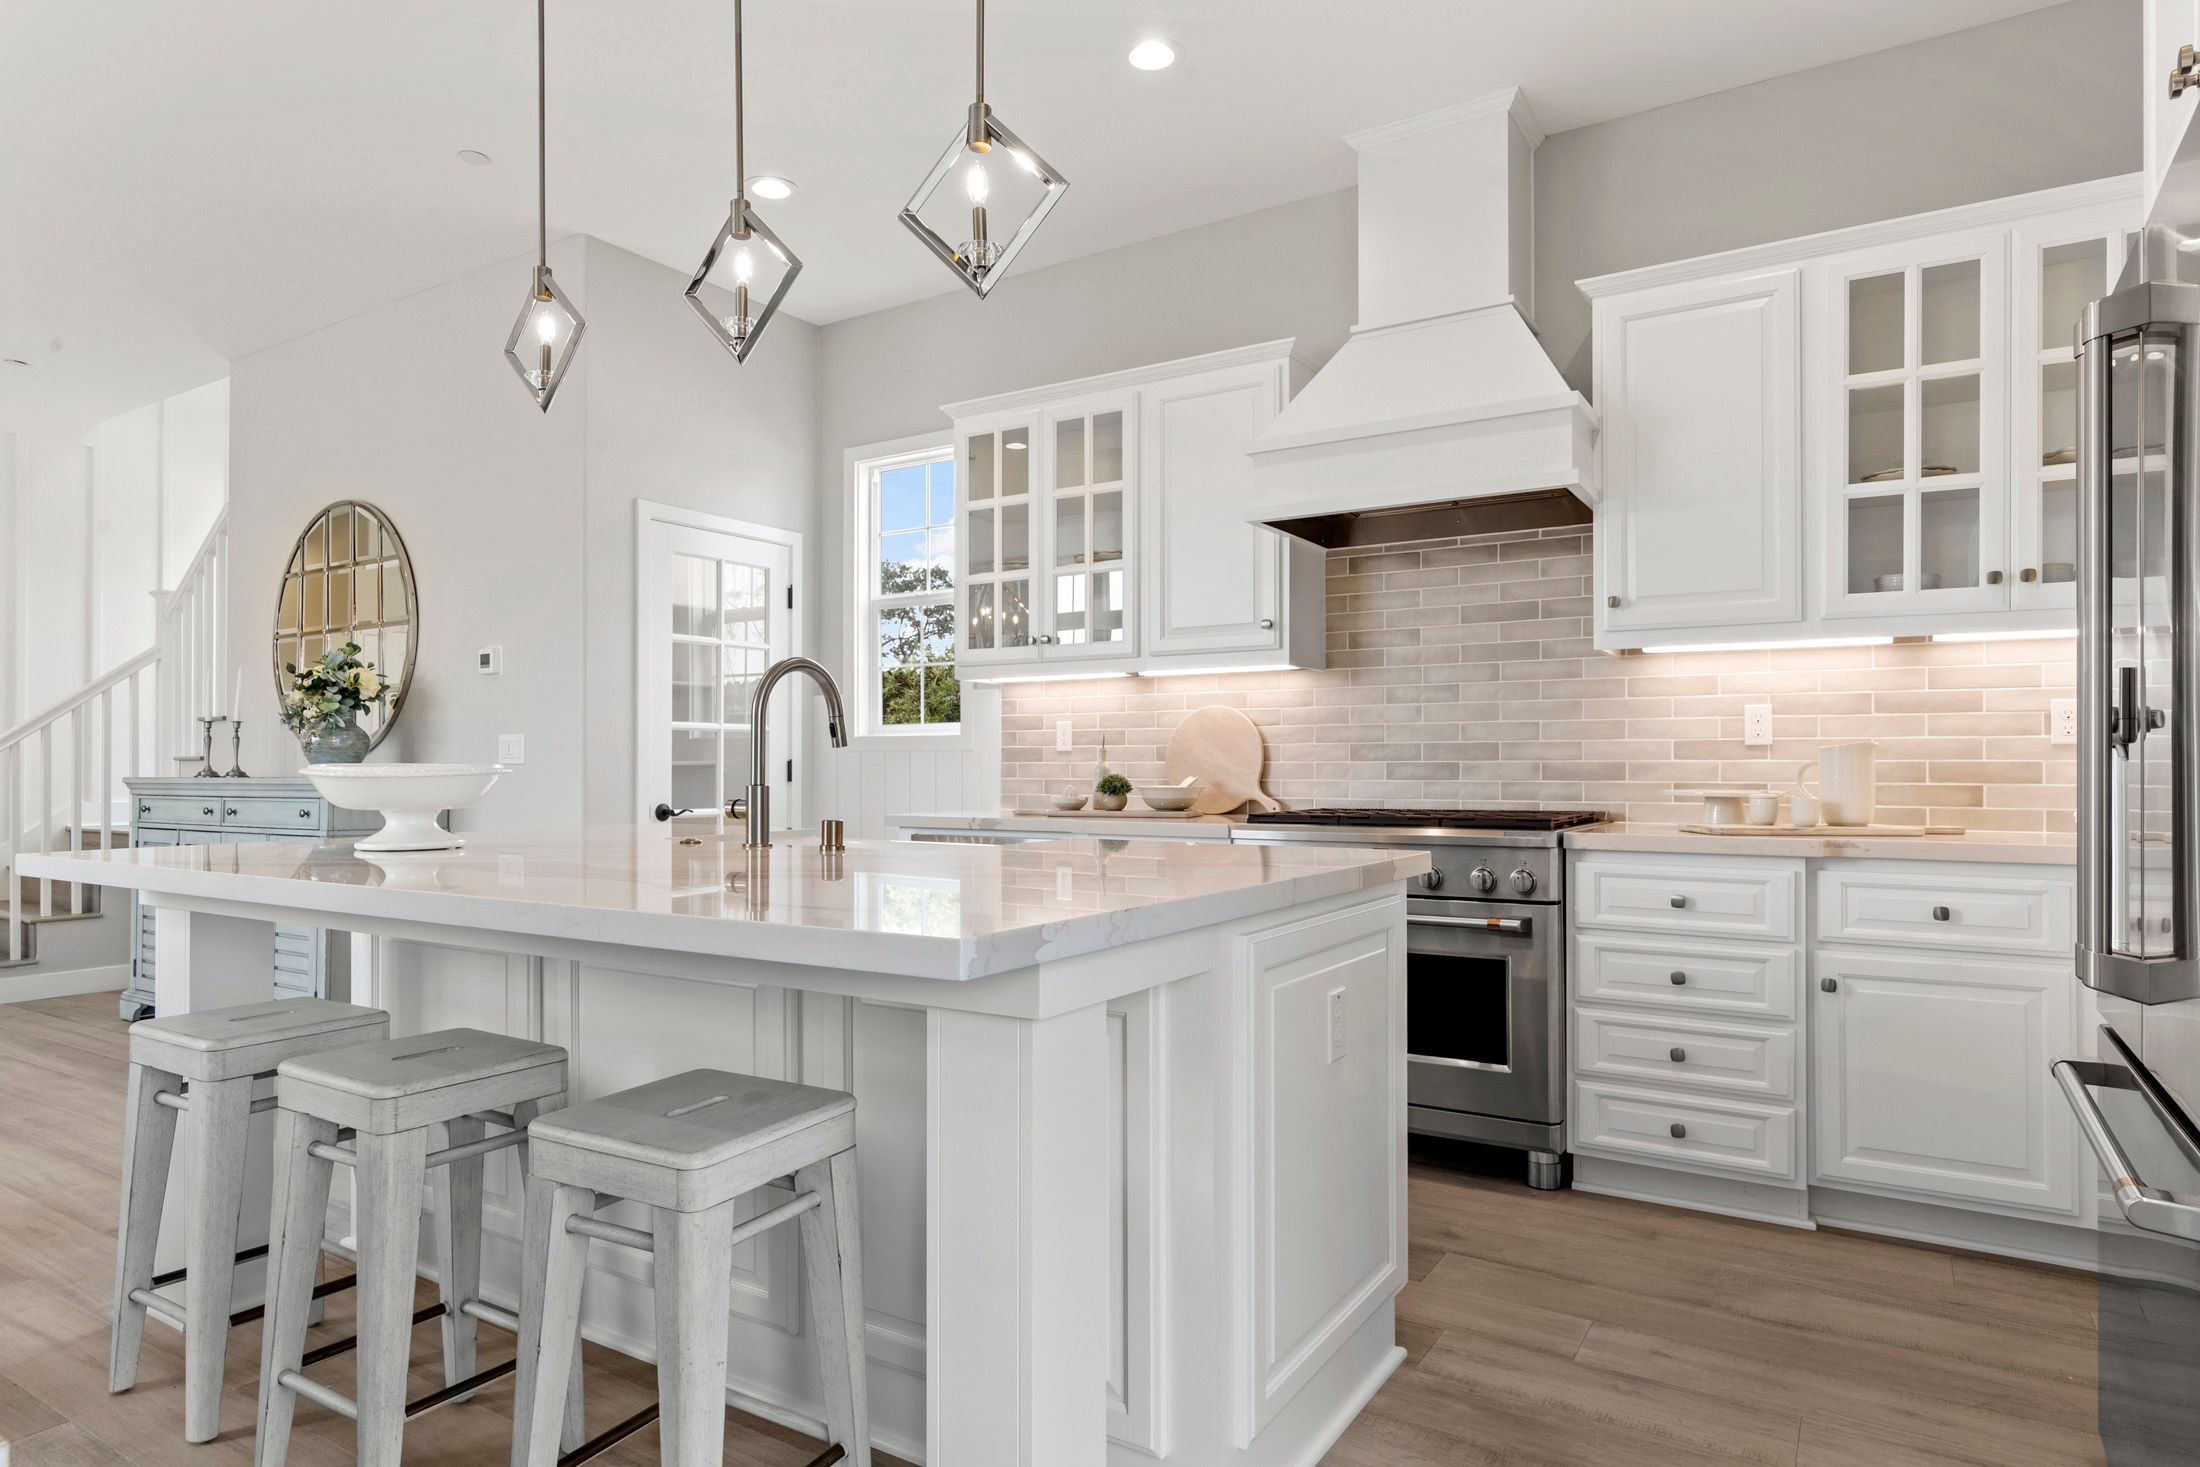 Kitchen featured in the Residence 5 By BlackPine Communites in Sacramento, CA